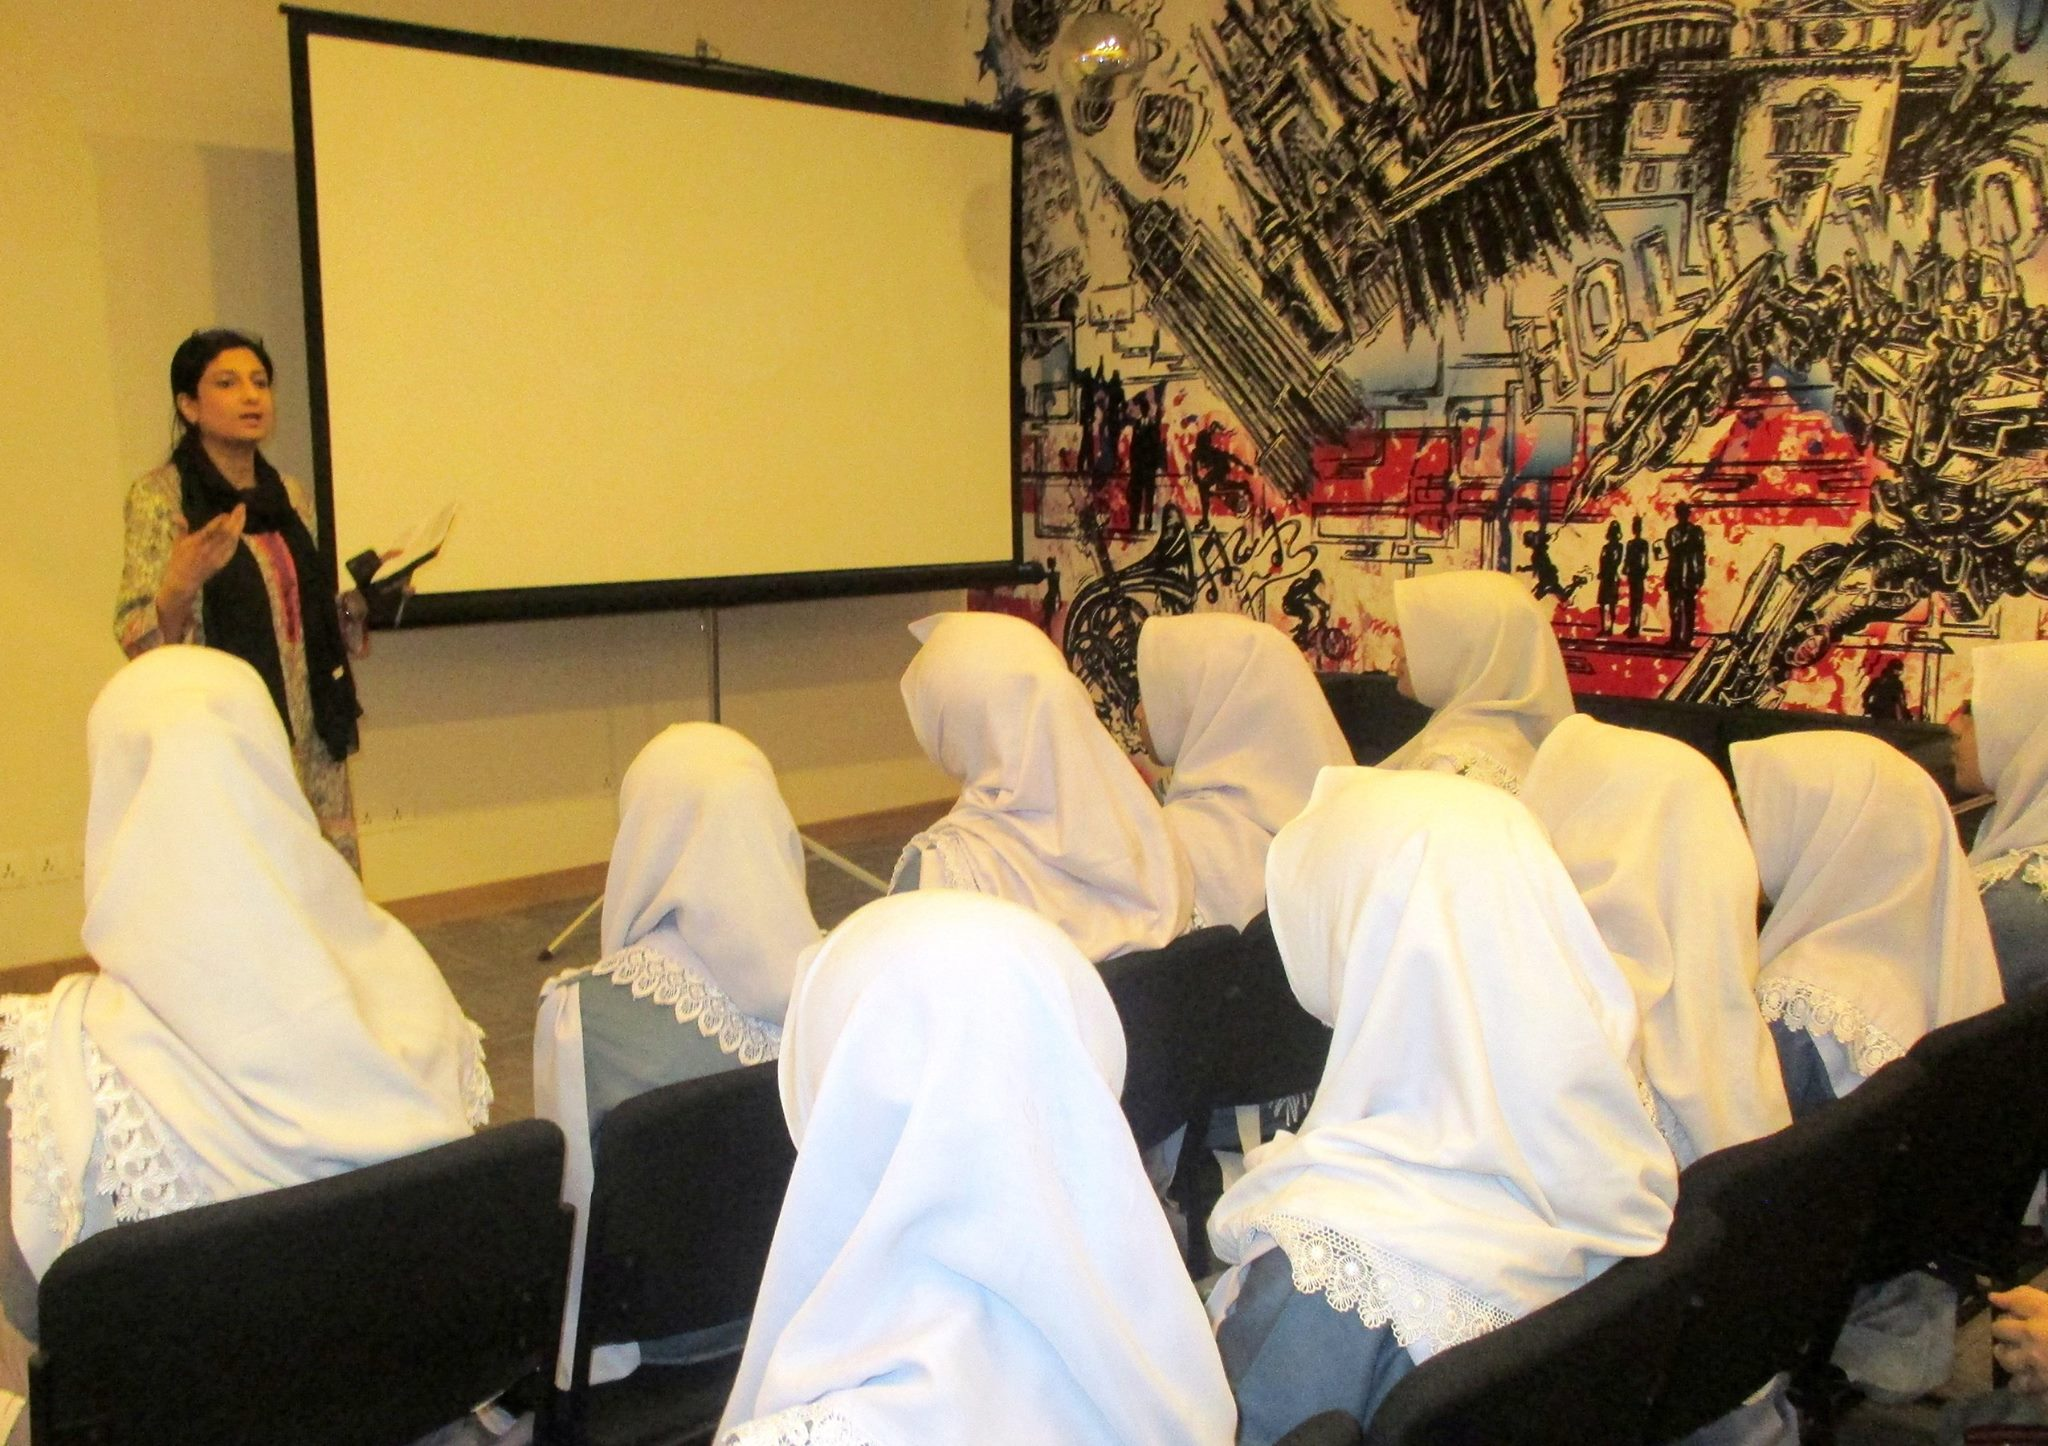 Workshop by U.S Consulate at PACC